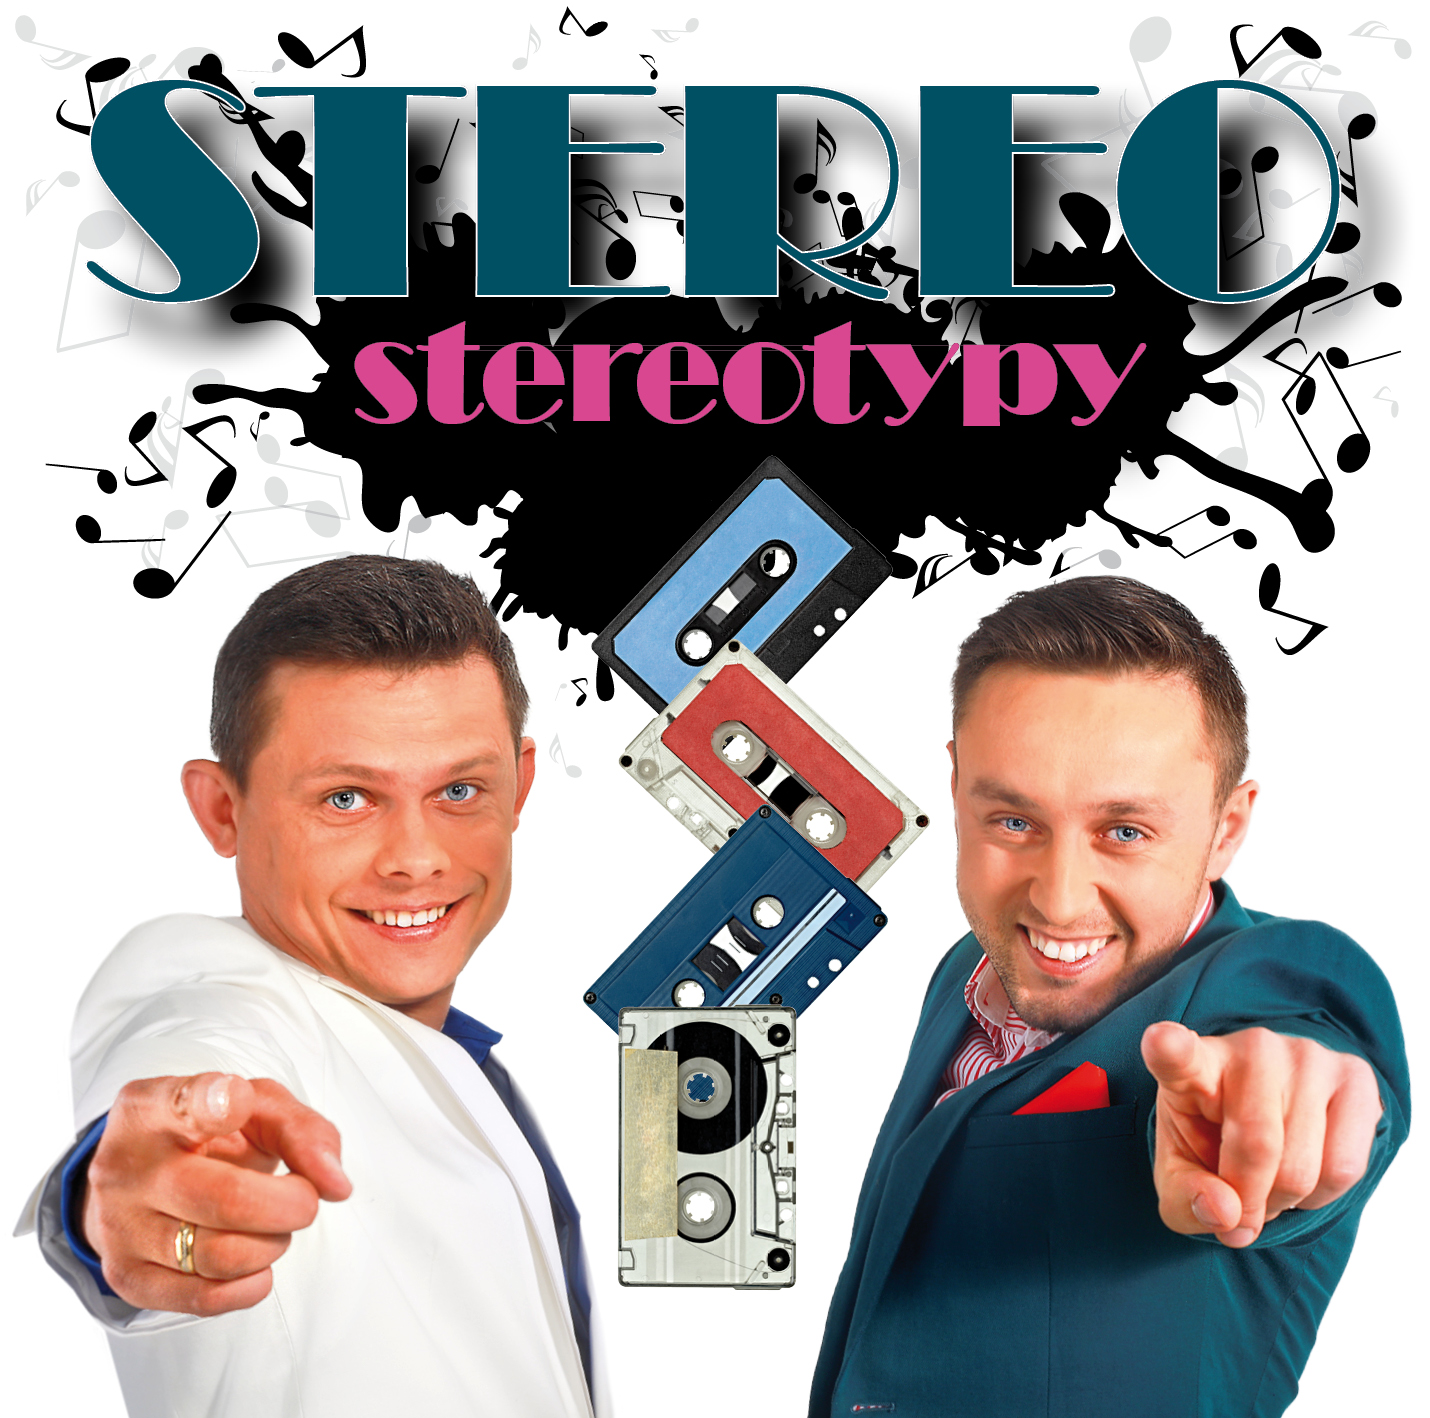 Stereo STEREOTYPY